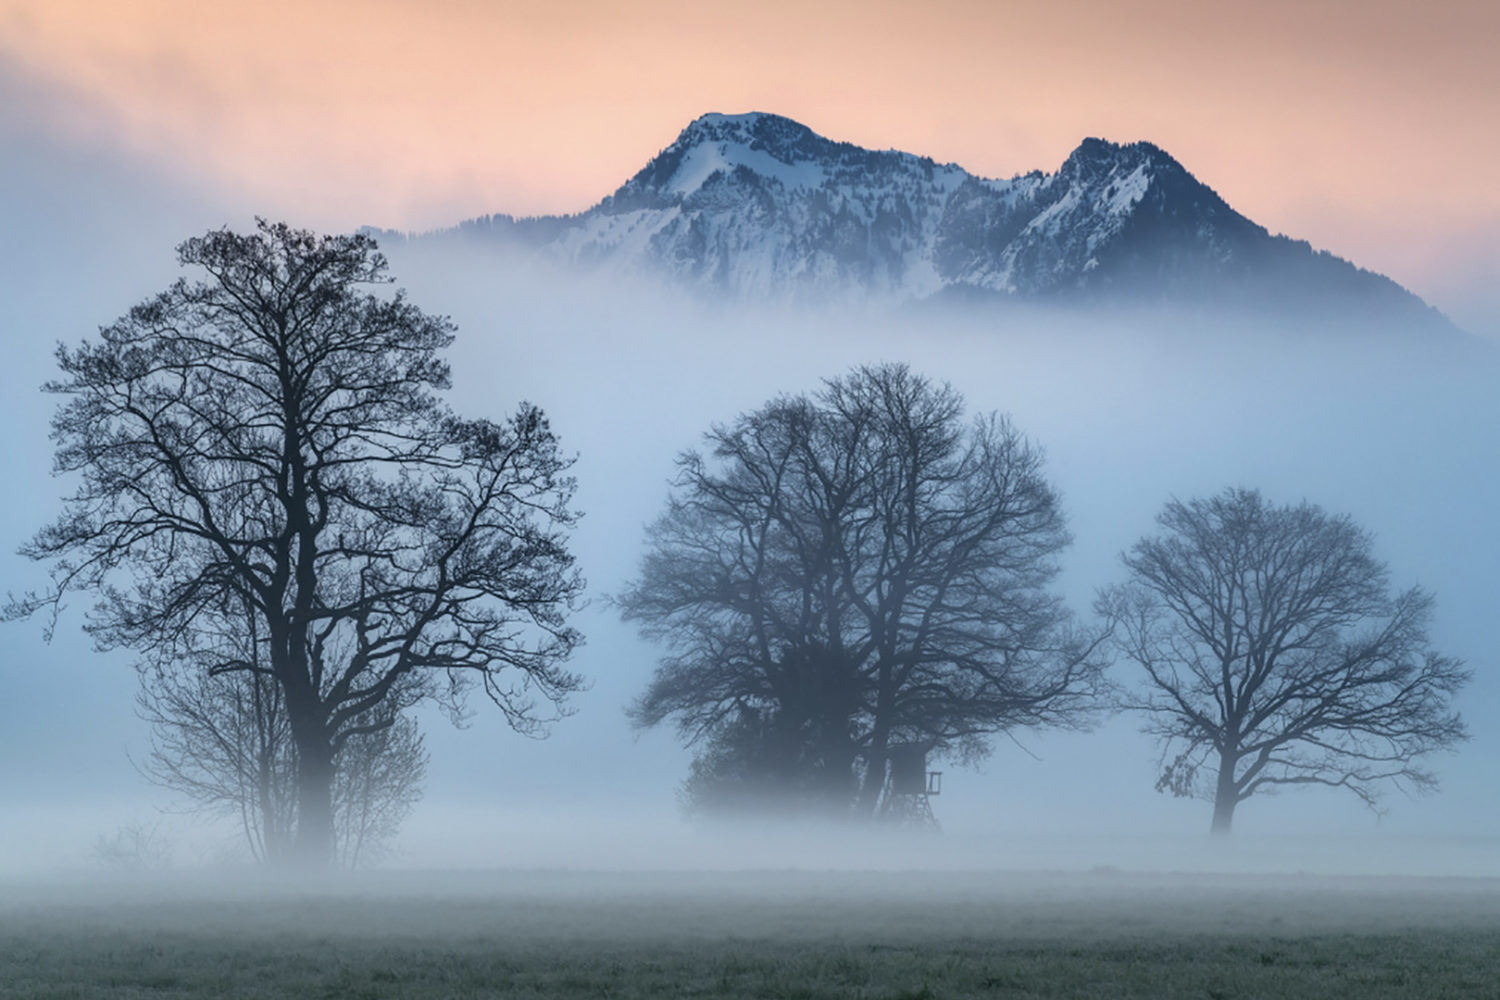 How to create ethereal photos on misty mornings